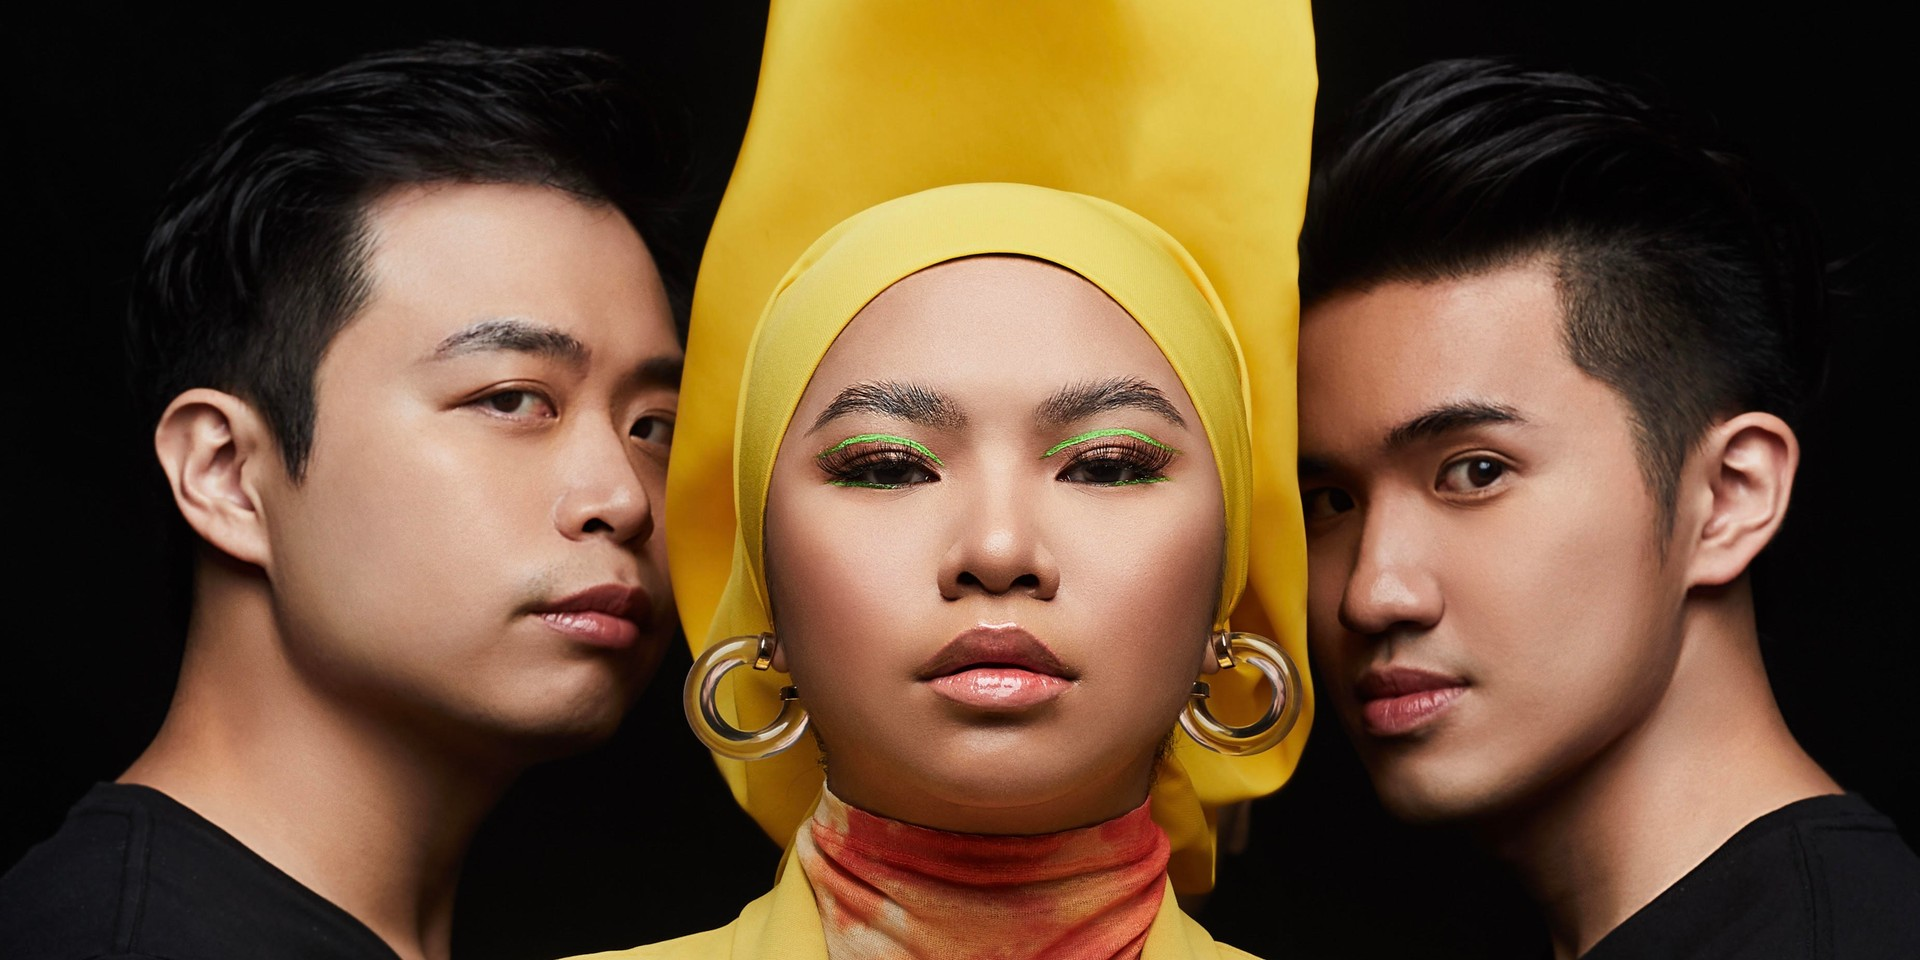 Malaysian dance music duo Spuds marks return with comeback single, 'Ghost' featuring Aina Abdul